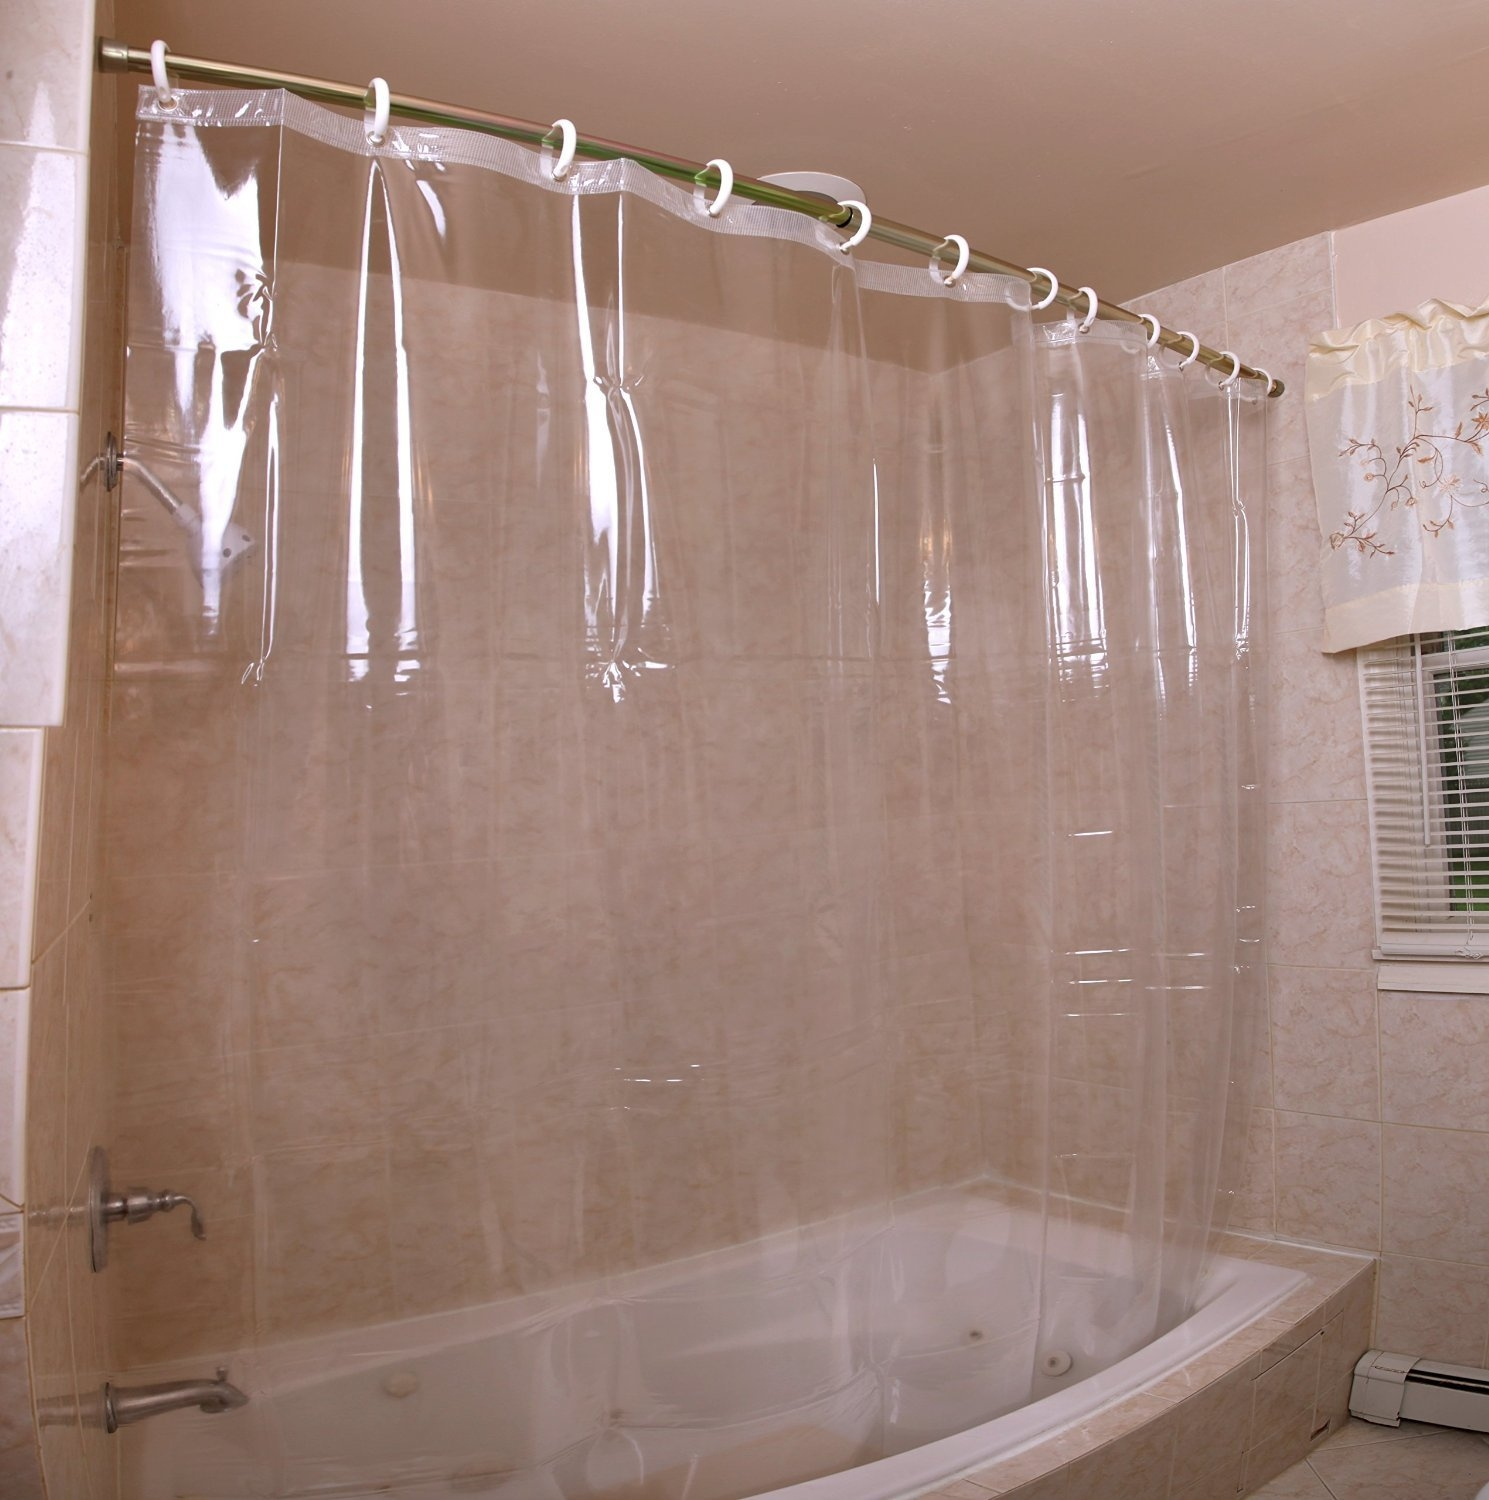 Clear Shower Curtain With Design.  Clear Plastic Shower Curtain Extra Long Curtains Ideas